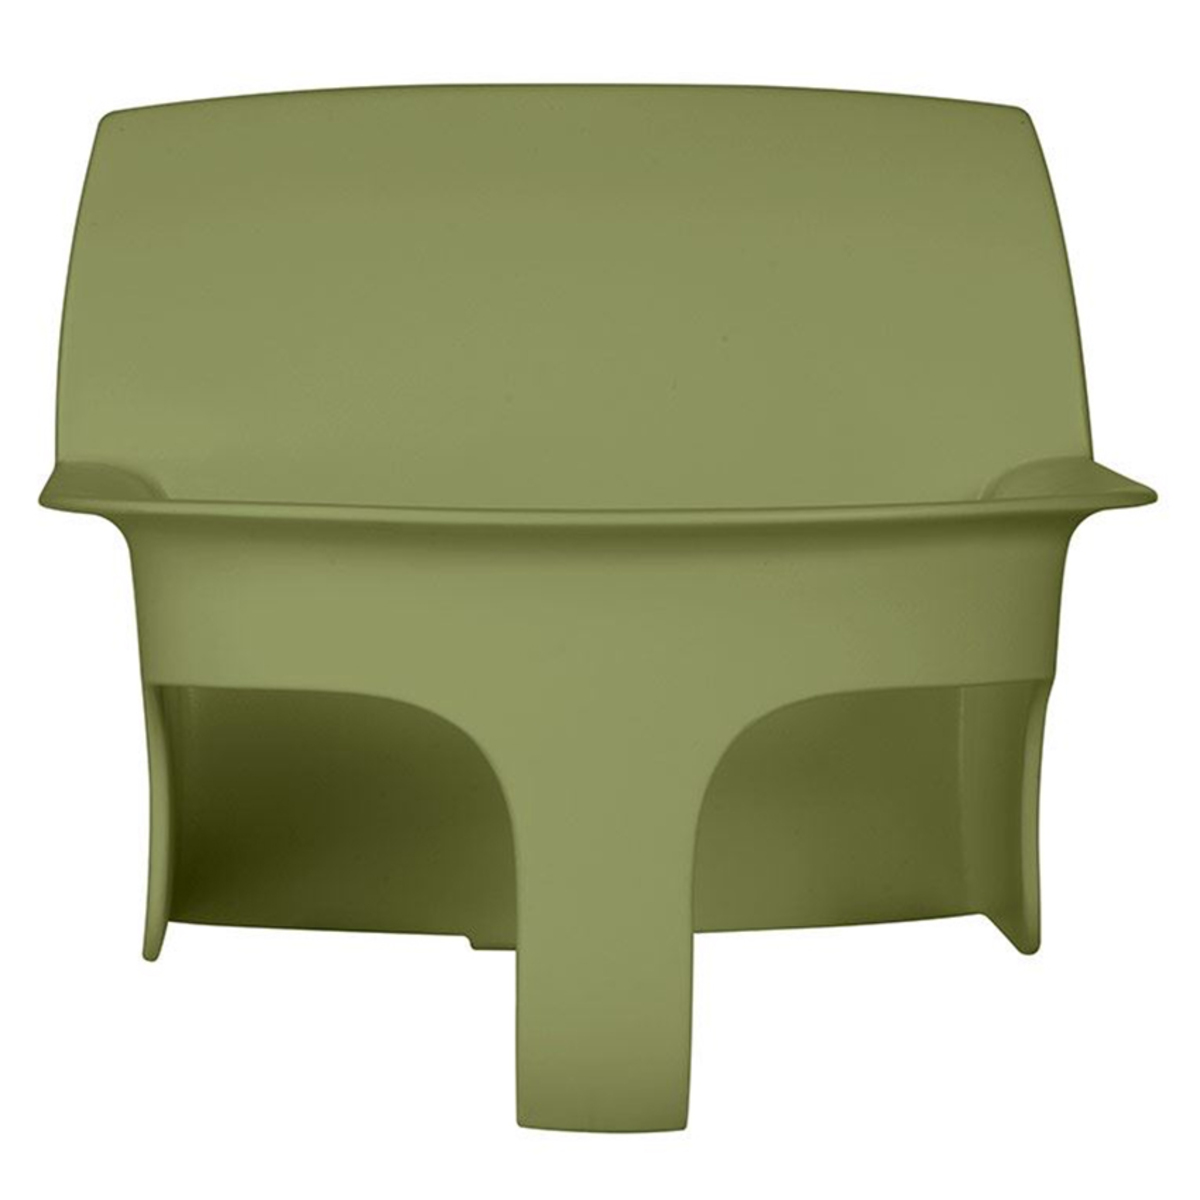 Chaise haute Set Bébé Lemo - Outback Green Set Bébé Lemo - Outback Green